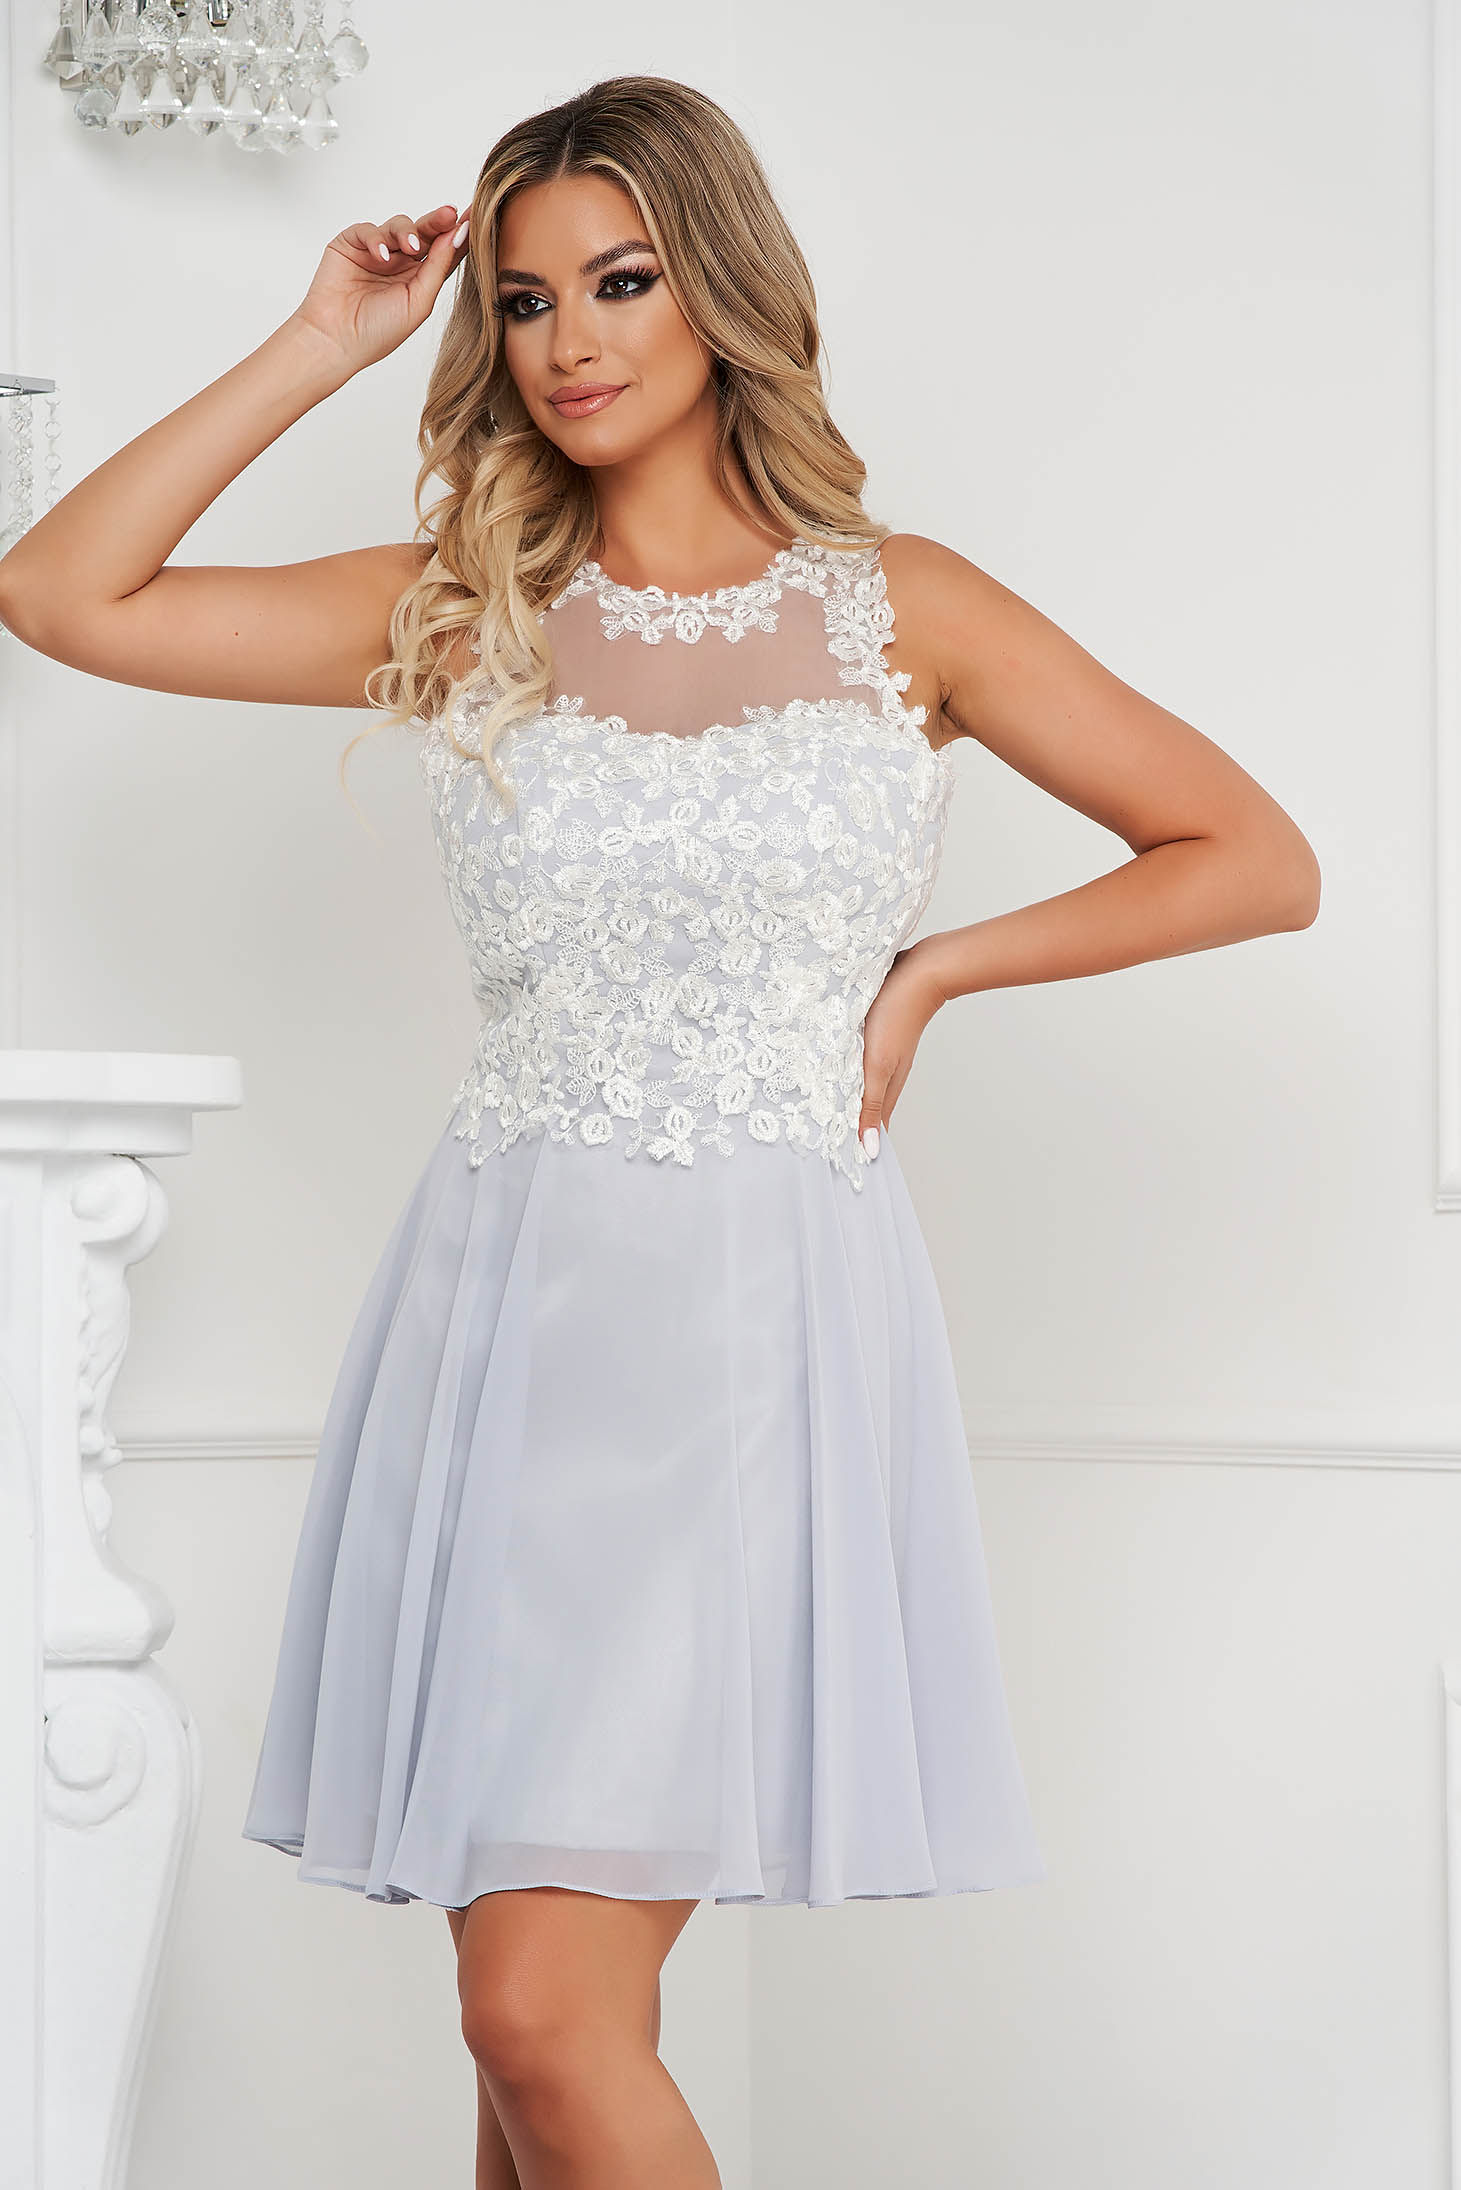 Grey dress short cut occasional from veil fabric with embroidery details sleeveless